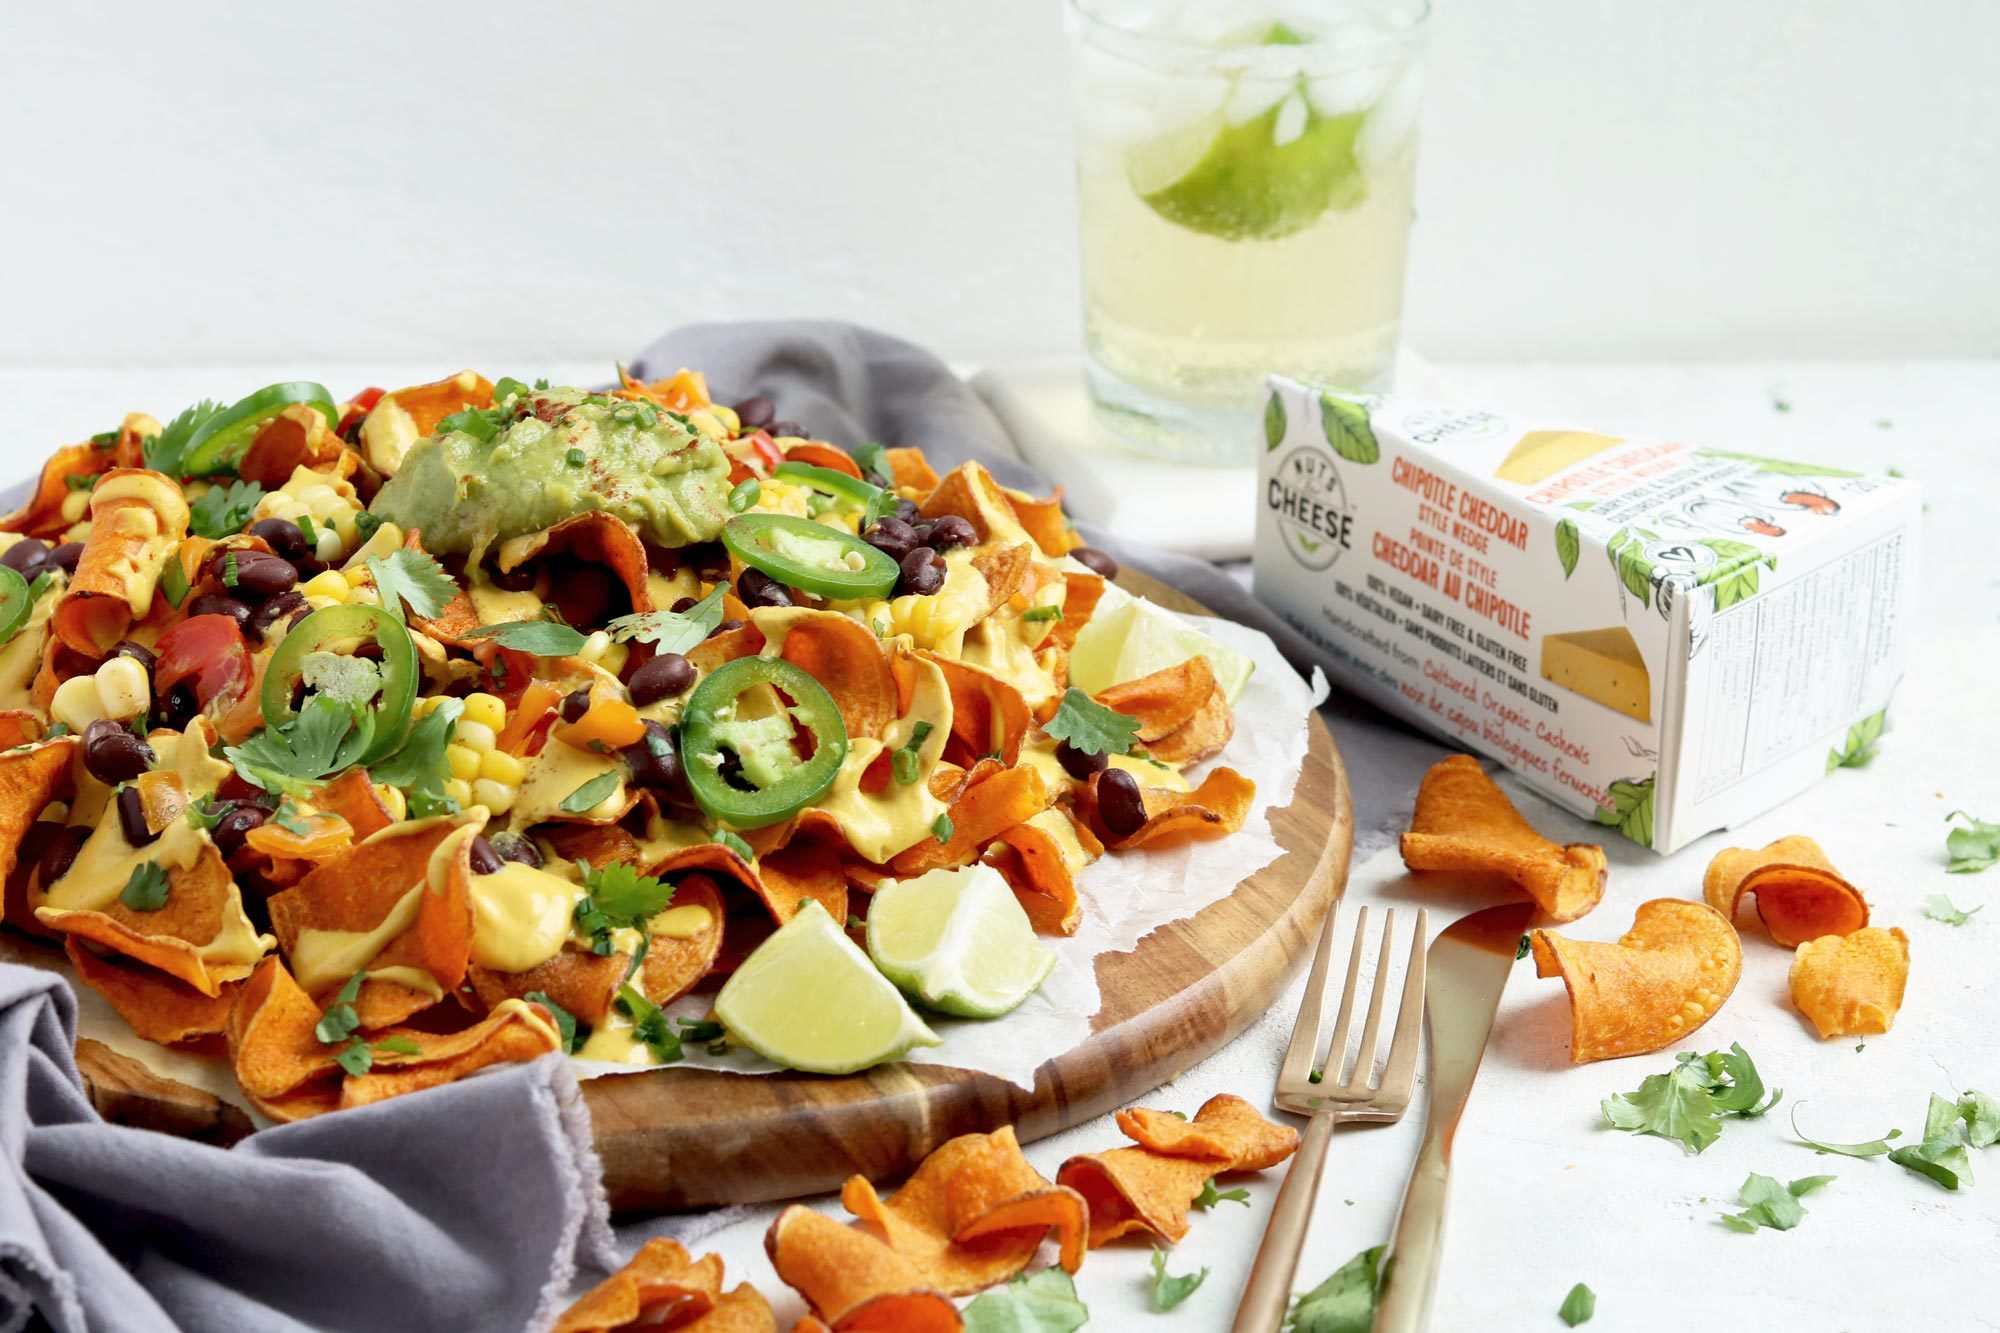 Nuts For Cheese Chipotle Cheddar Sweet Potato Nachos